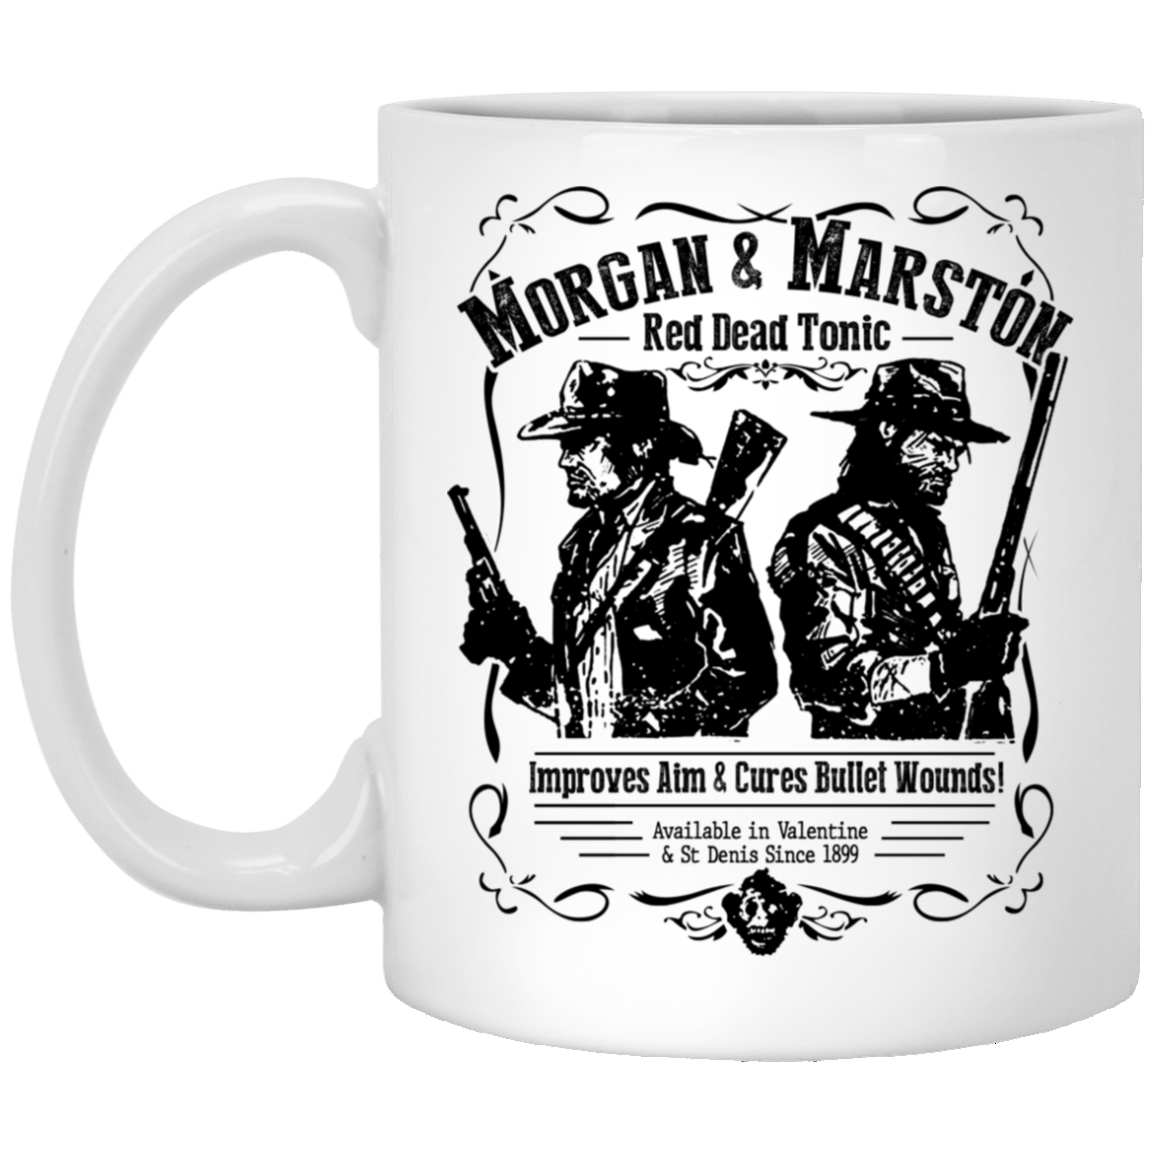 Morgan & Marston Red Dead Tonic Mug 1005-9786-91587495-47417 - Tee Ript